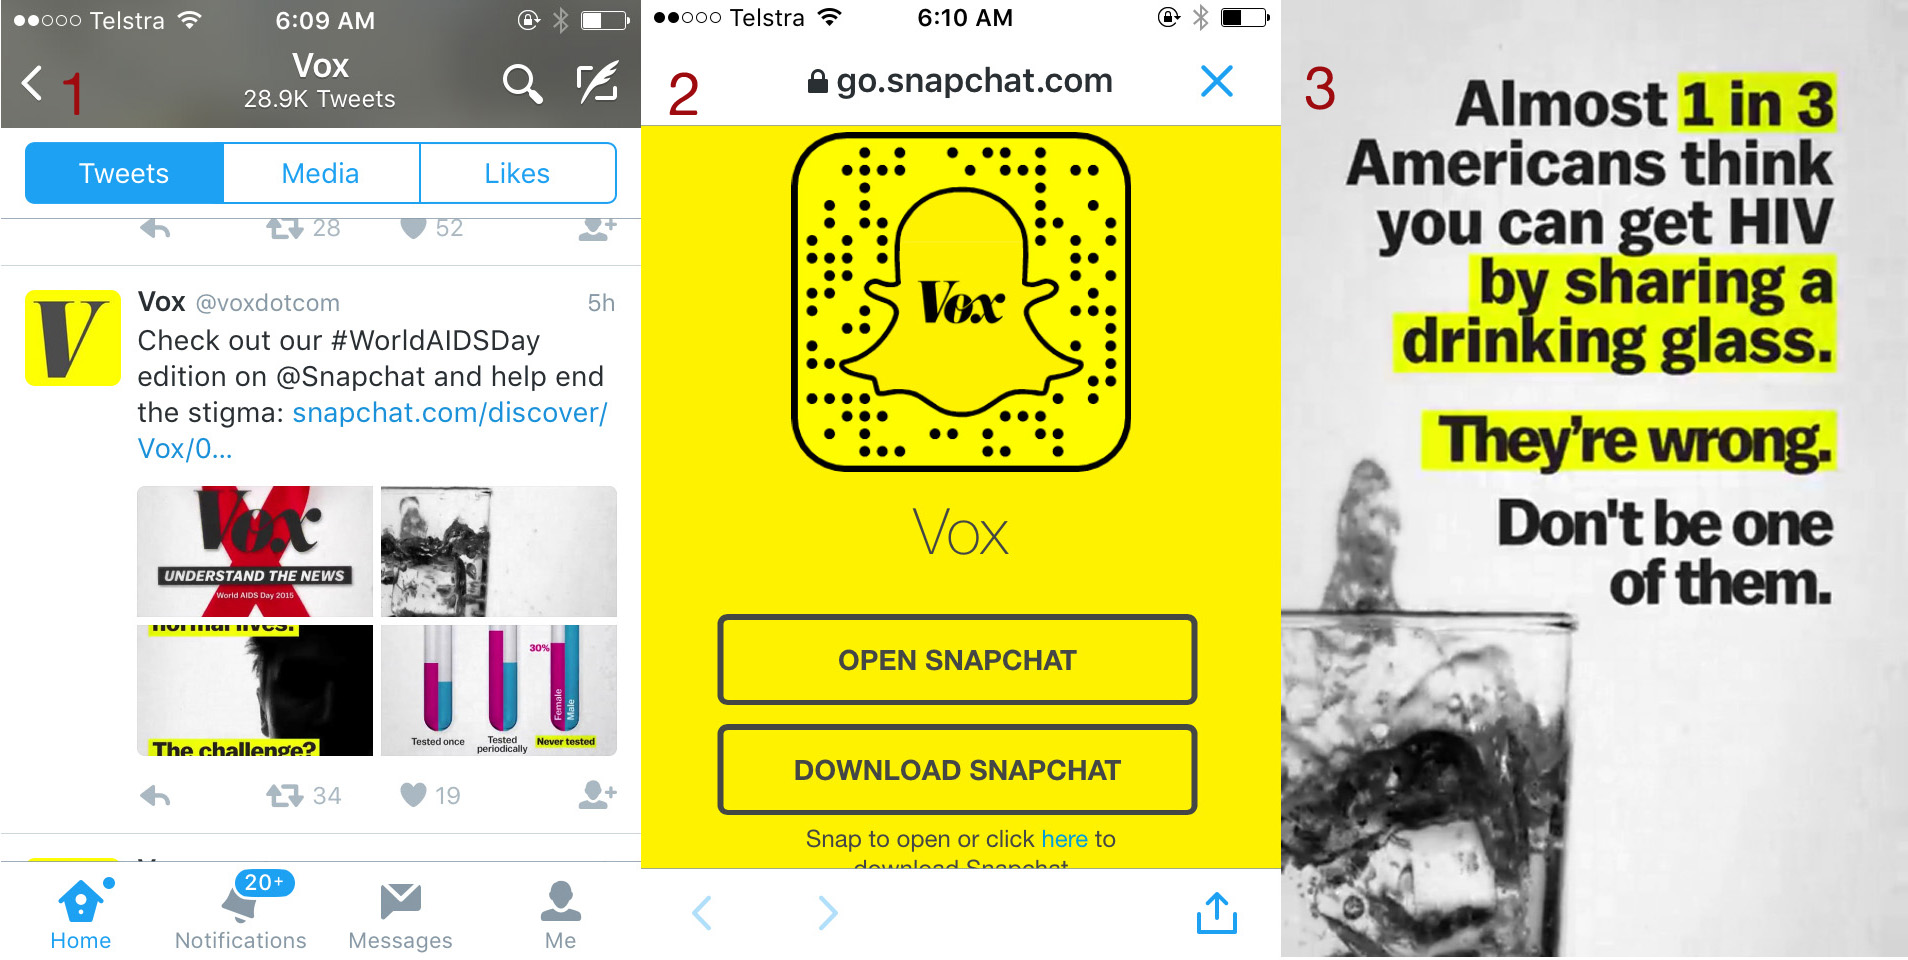 Snapchat Adds New Discovery Features Making it Easier to Find Other Users | Social Media Today